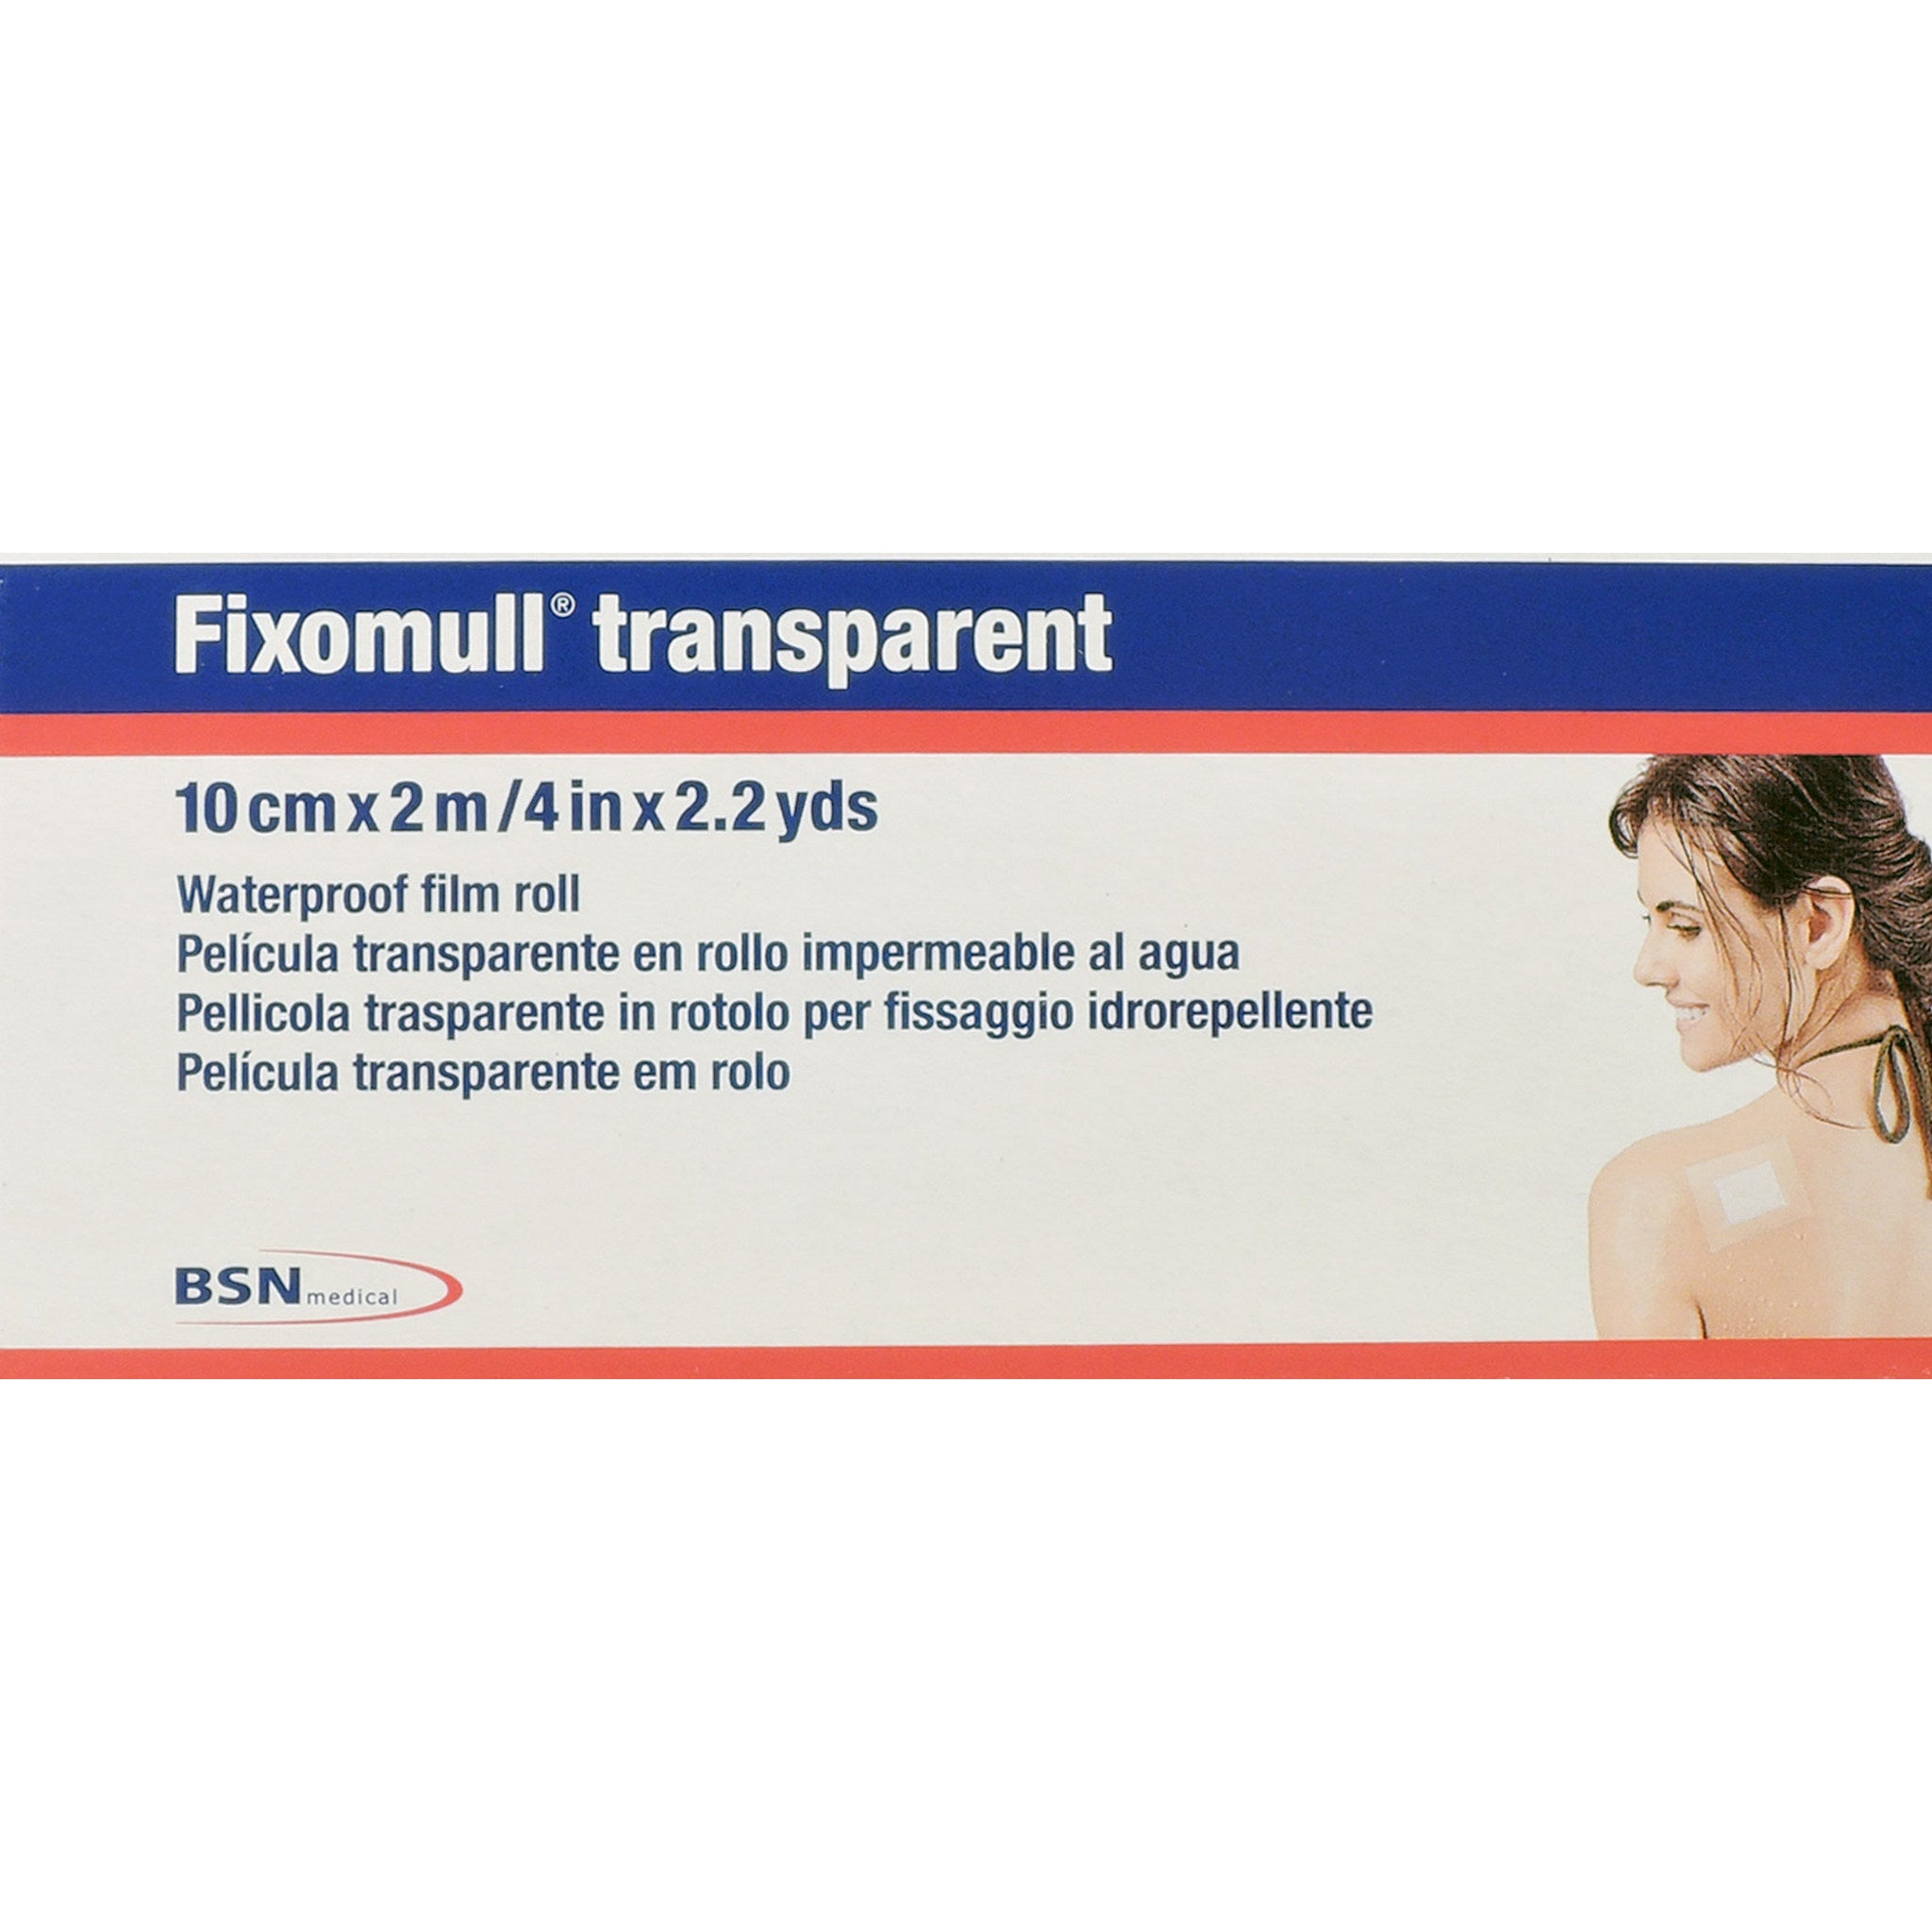 CEROTTO FIXOMULL TRANSPARENT 10X200